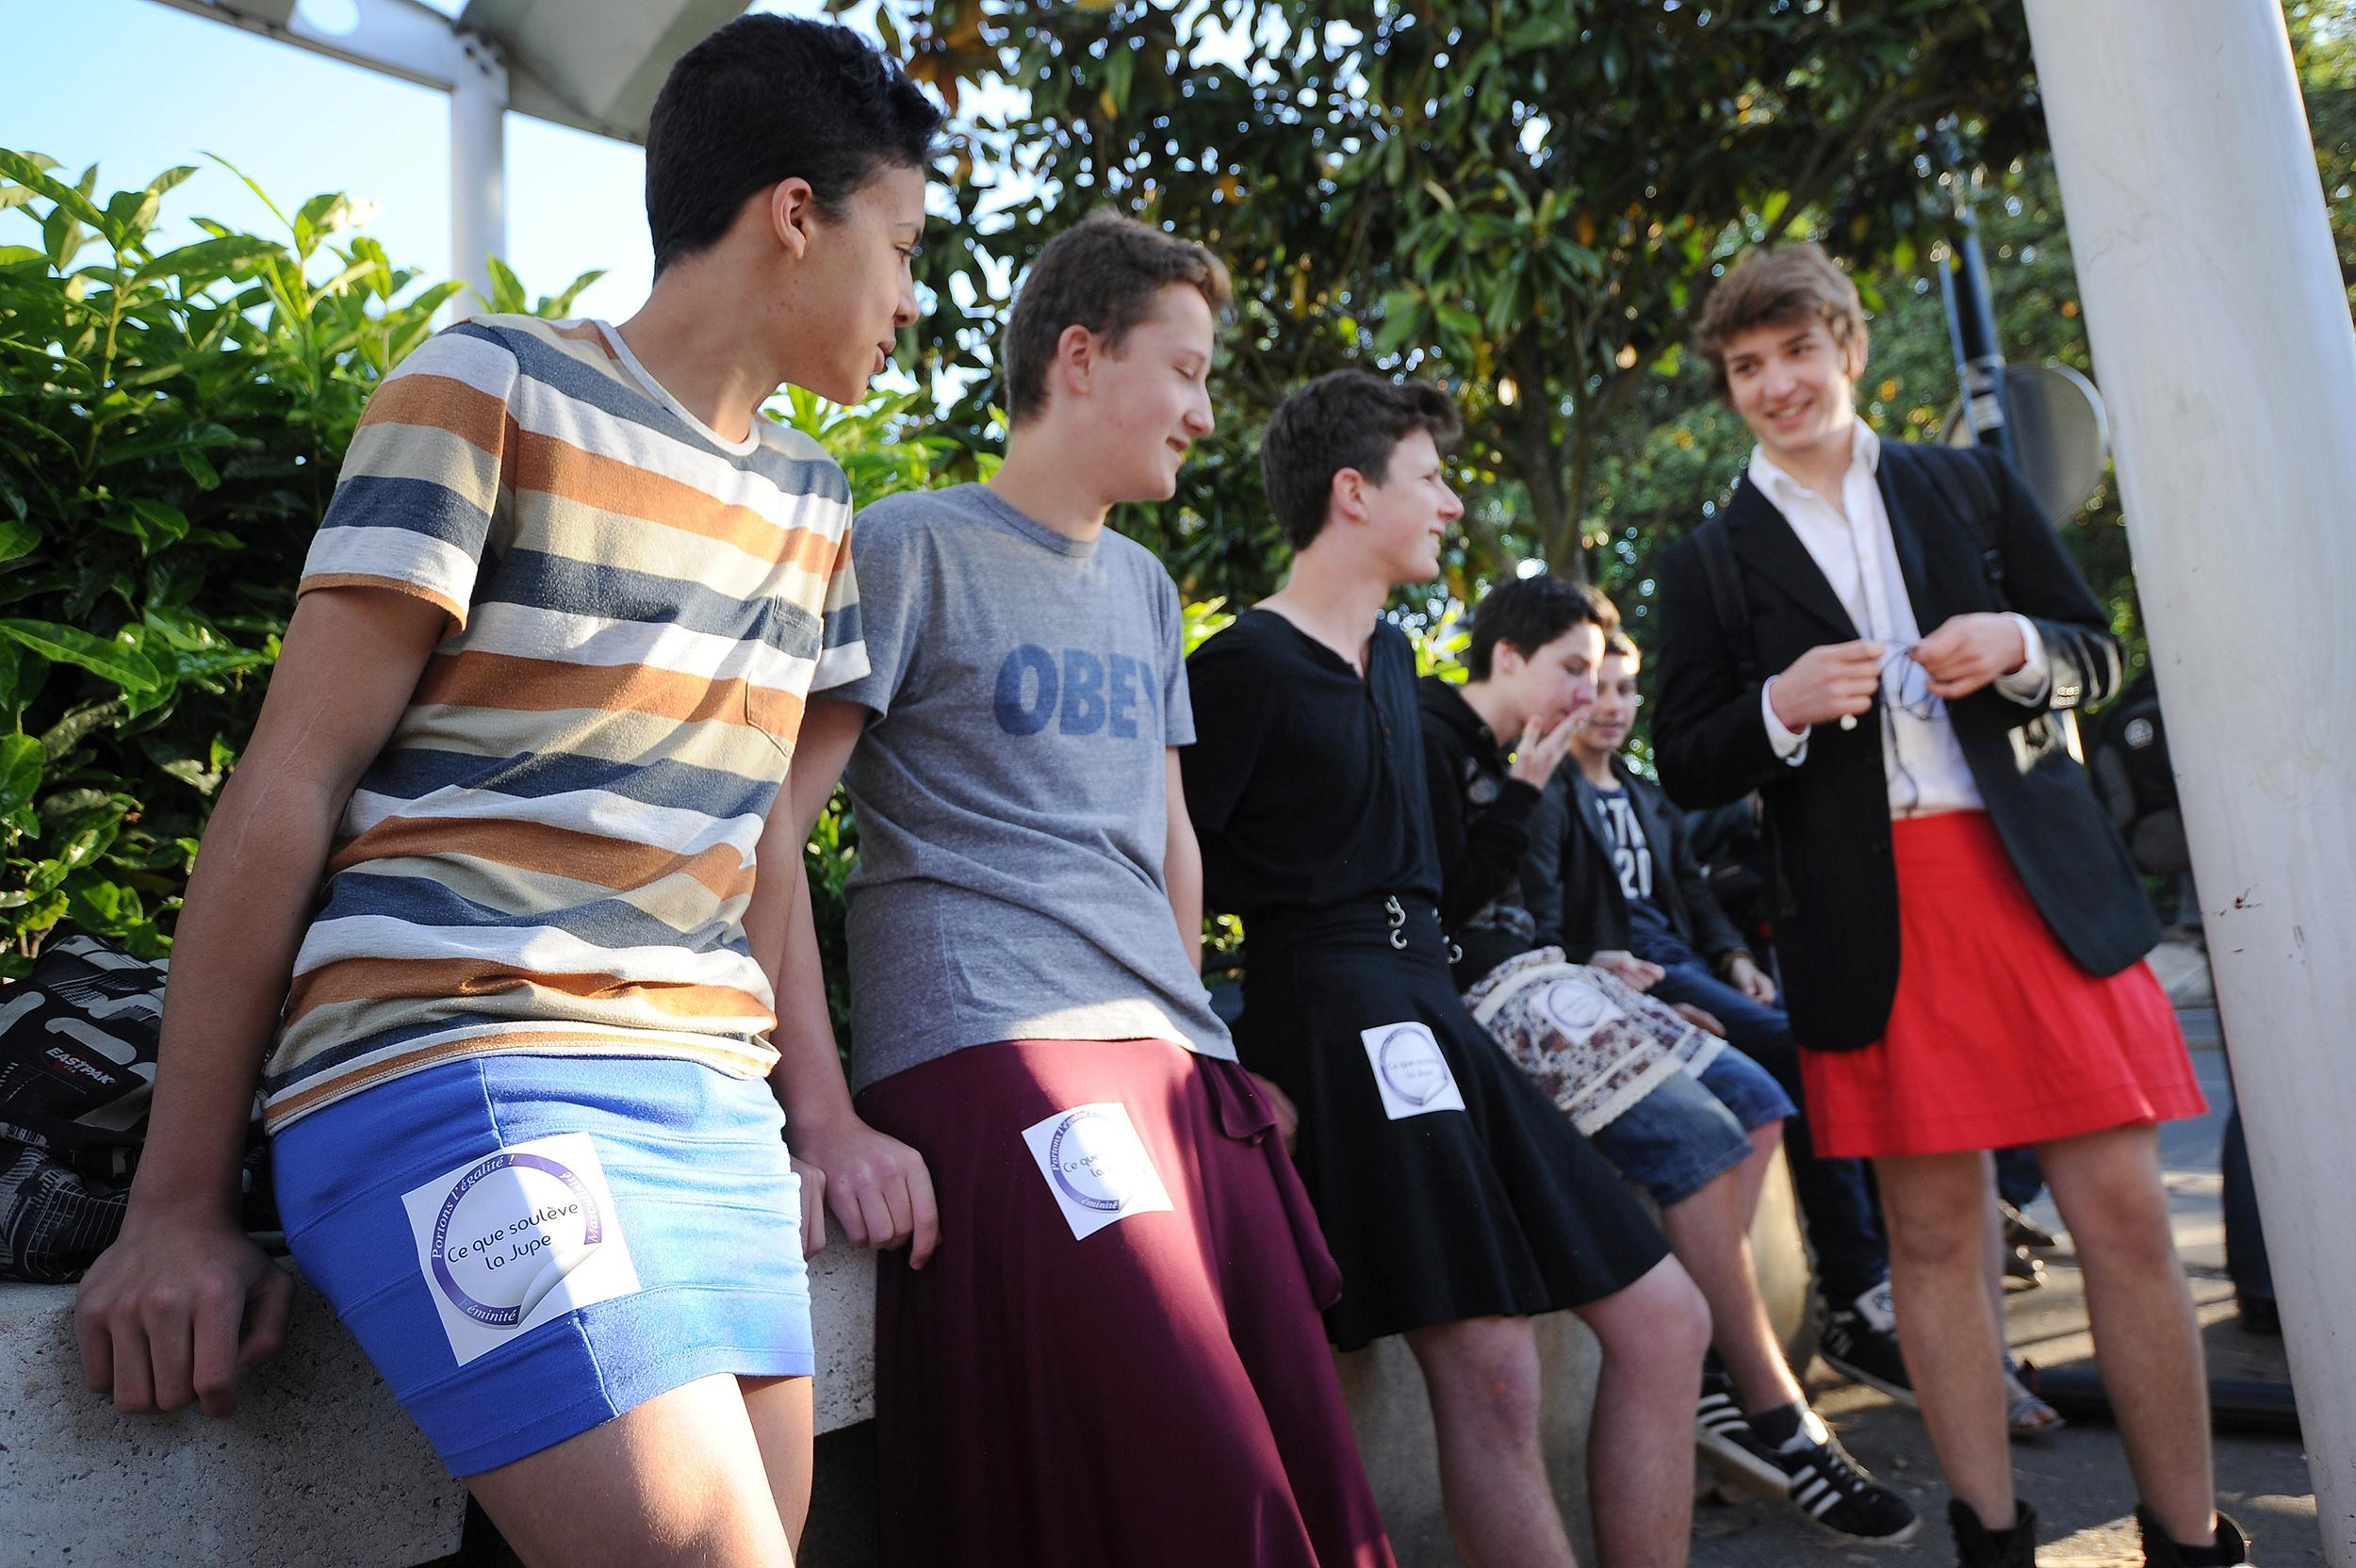 Image: Students dress in skirts as part of the